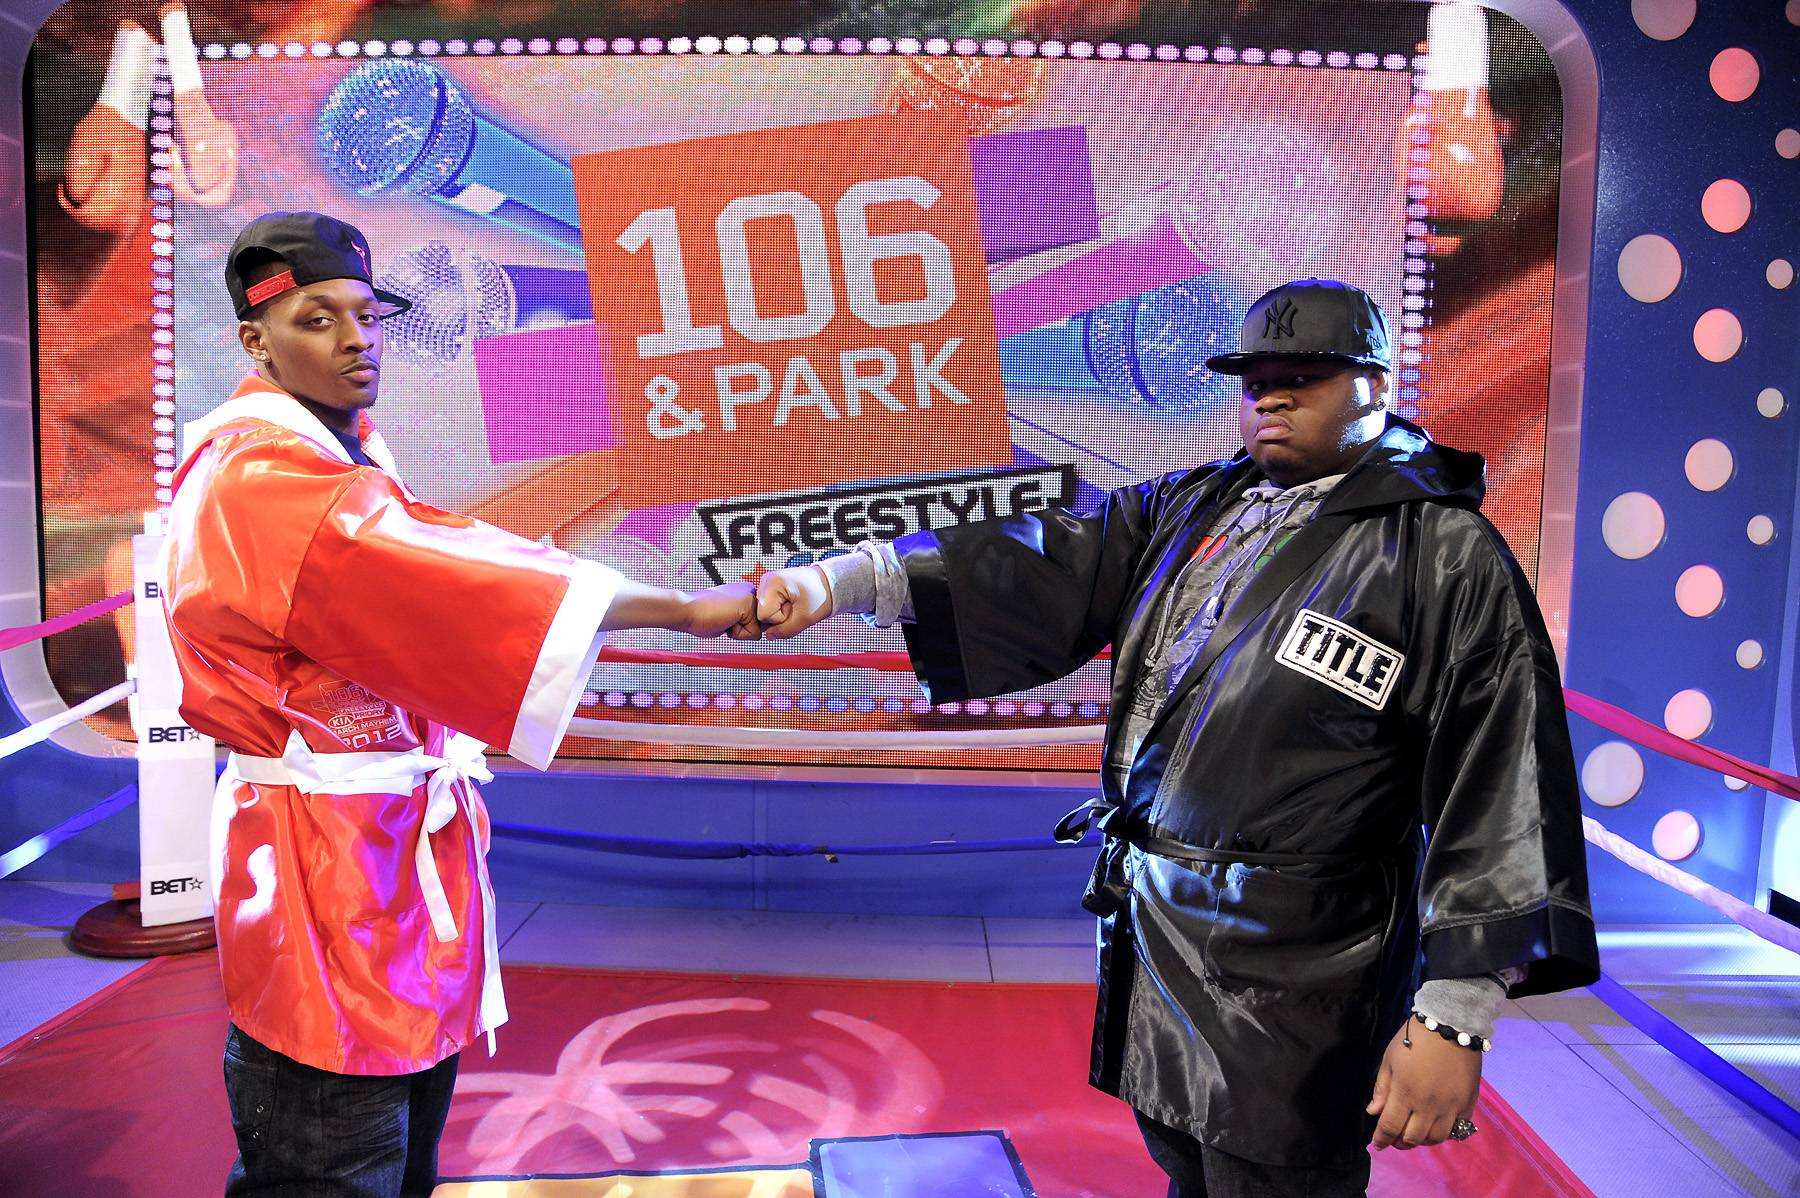 The Battle - Freestyle Friday contestants SyahBoy and Relly at 106 & Park, April 6, 2012. (photo: John Ricard / BET)